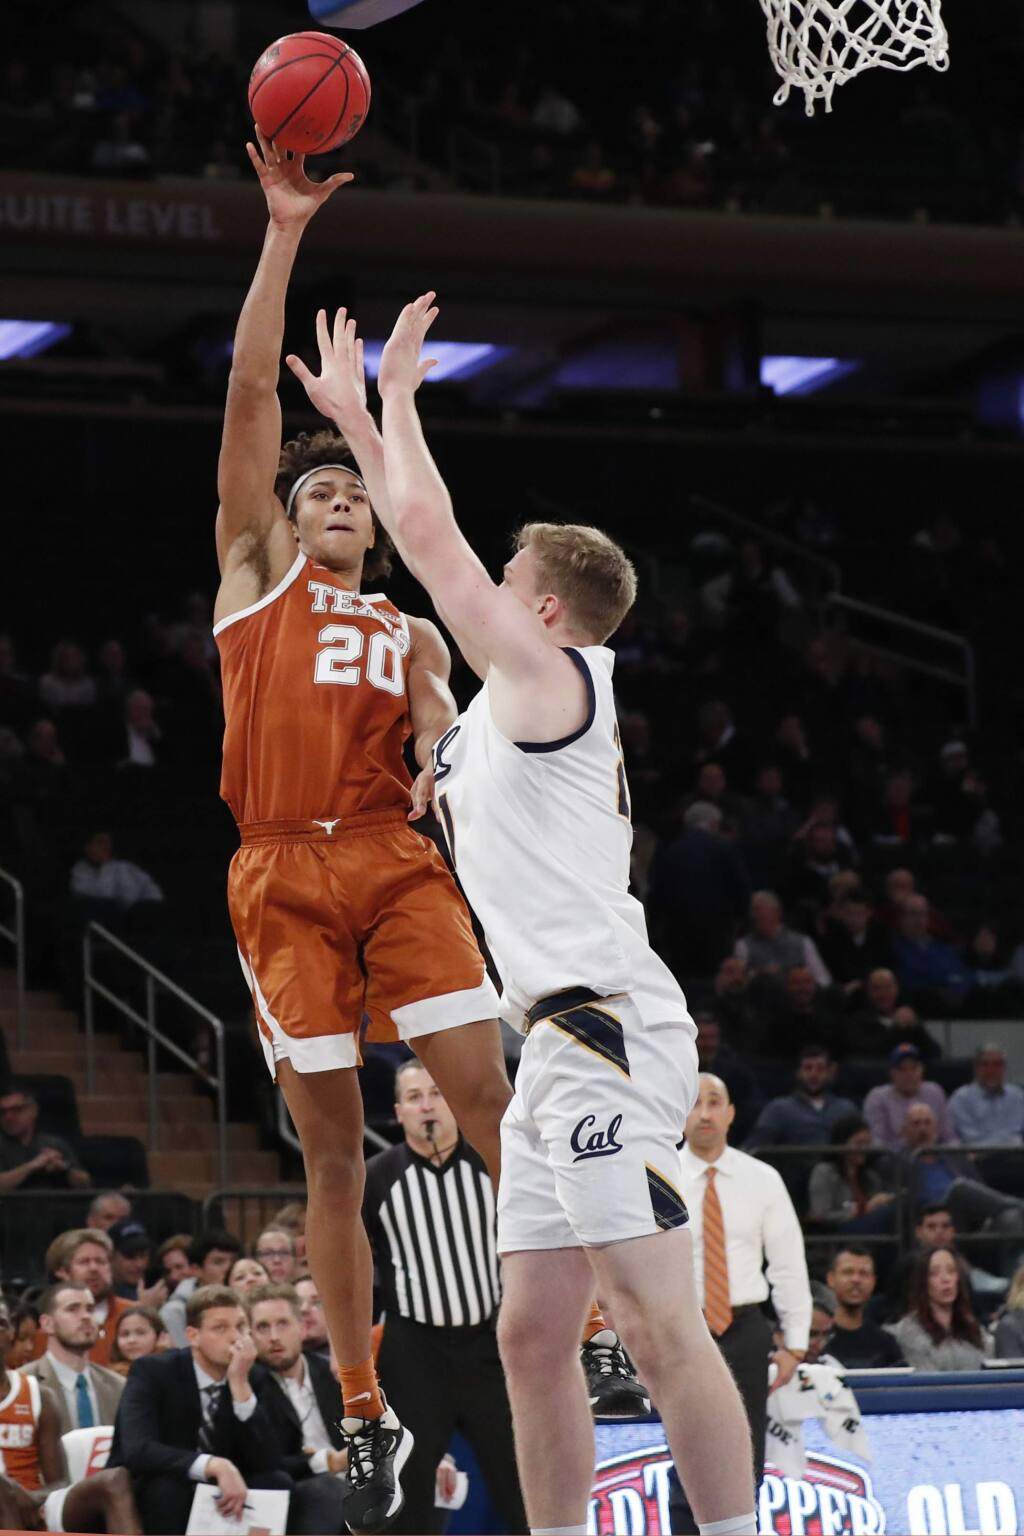 Texas forward Jericho Sims (20) passes around Cal forward Lars Thiemann (21) during the second half in the 2K Empire Classic, Thursday, Nov. 21, 2019, in New York. (AP Photo/Kathy Willens)